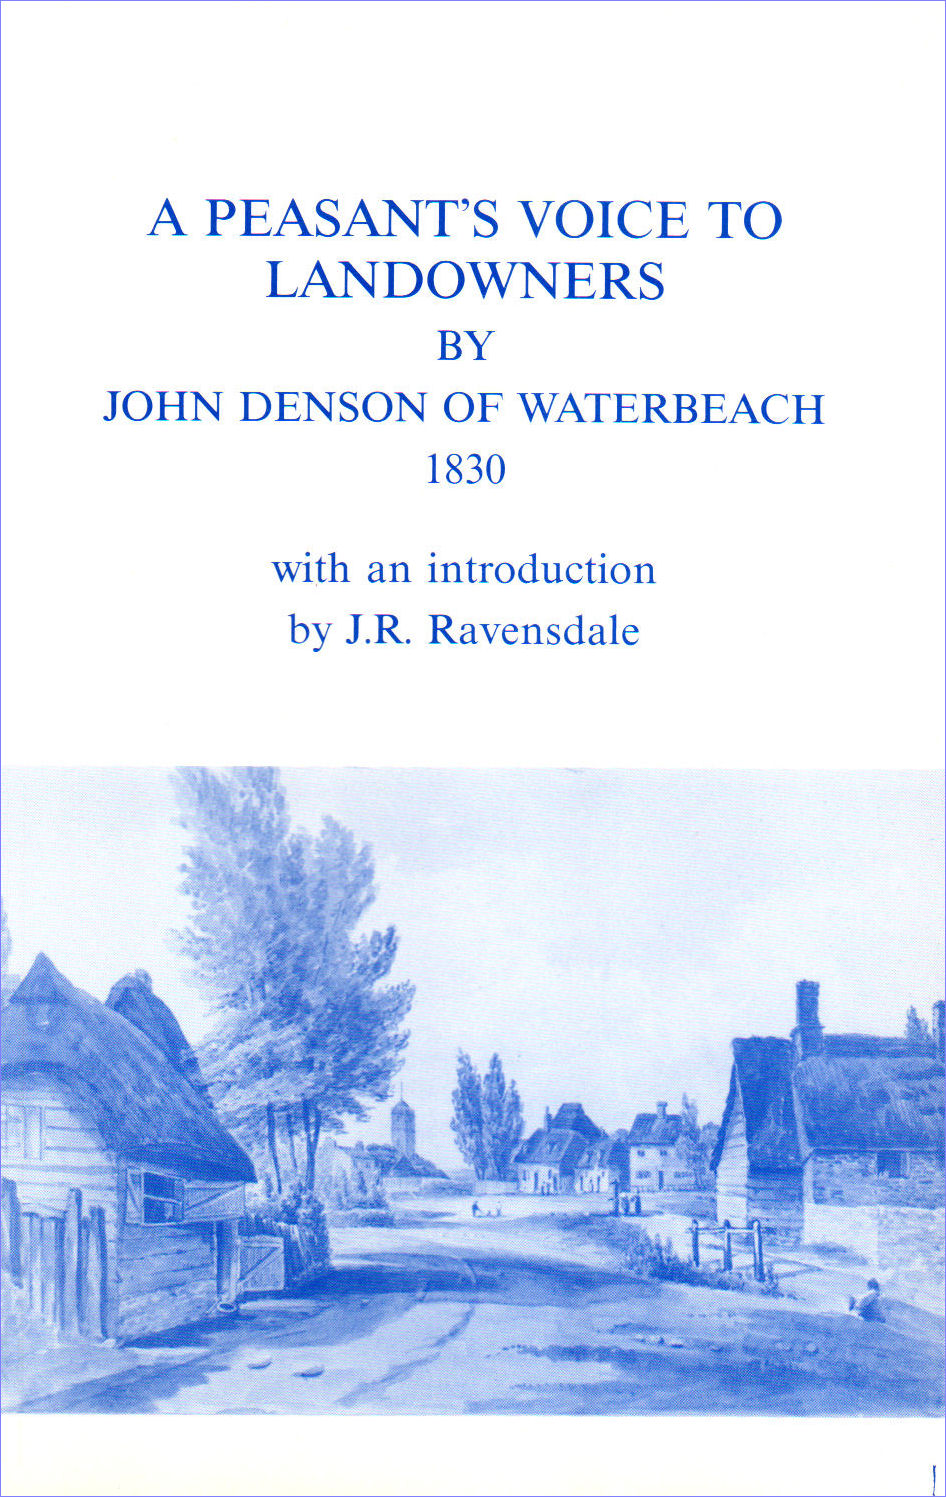 9. A Peasant's Voice to Landowners, by John Denson of Waterbeach, 1830. Reprinted with Masters' History of Waterbeach (1795). Introduction by Jack Ravensdale.